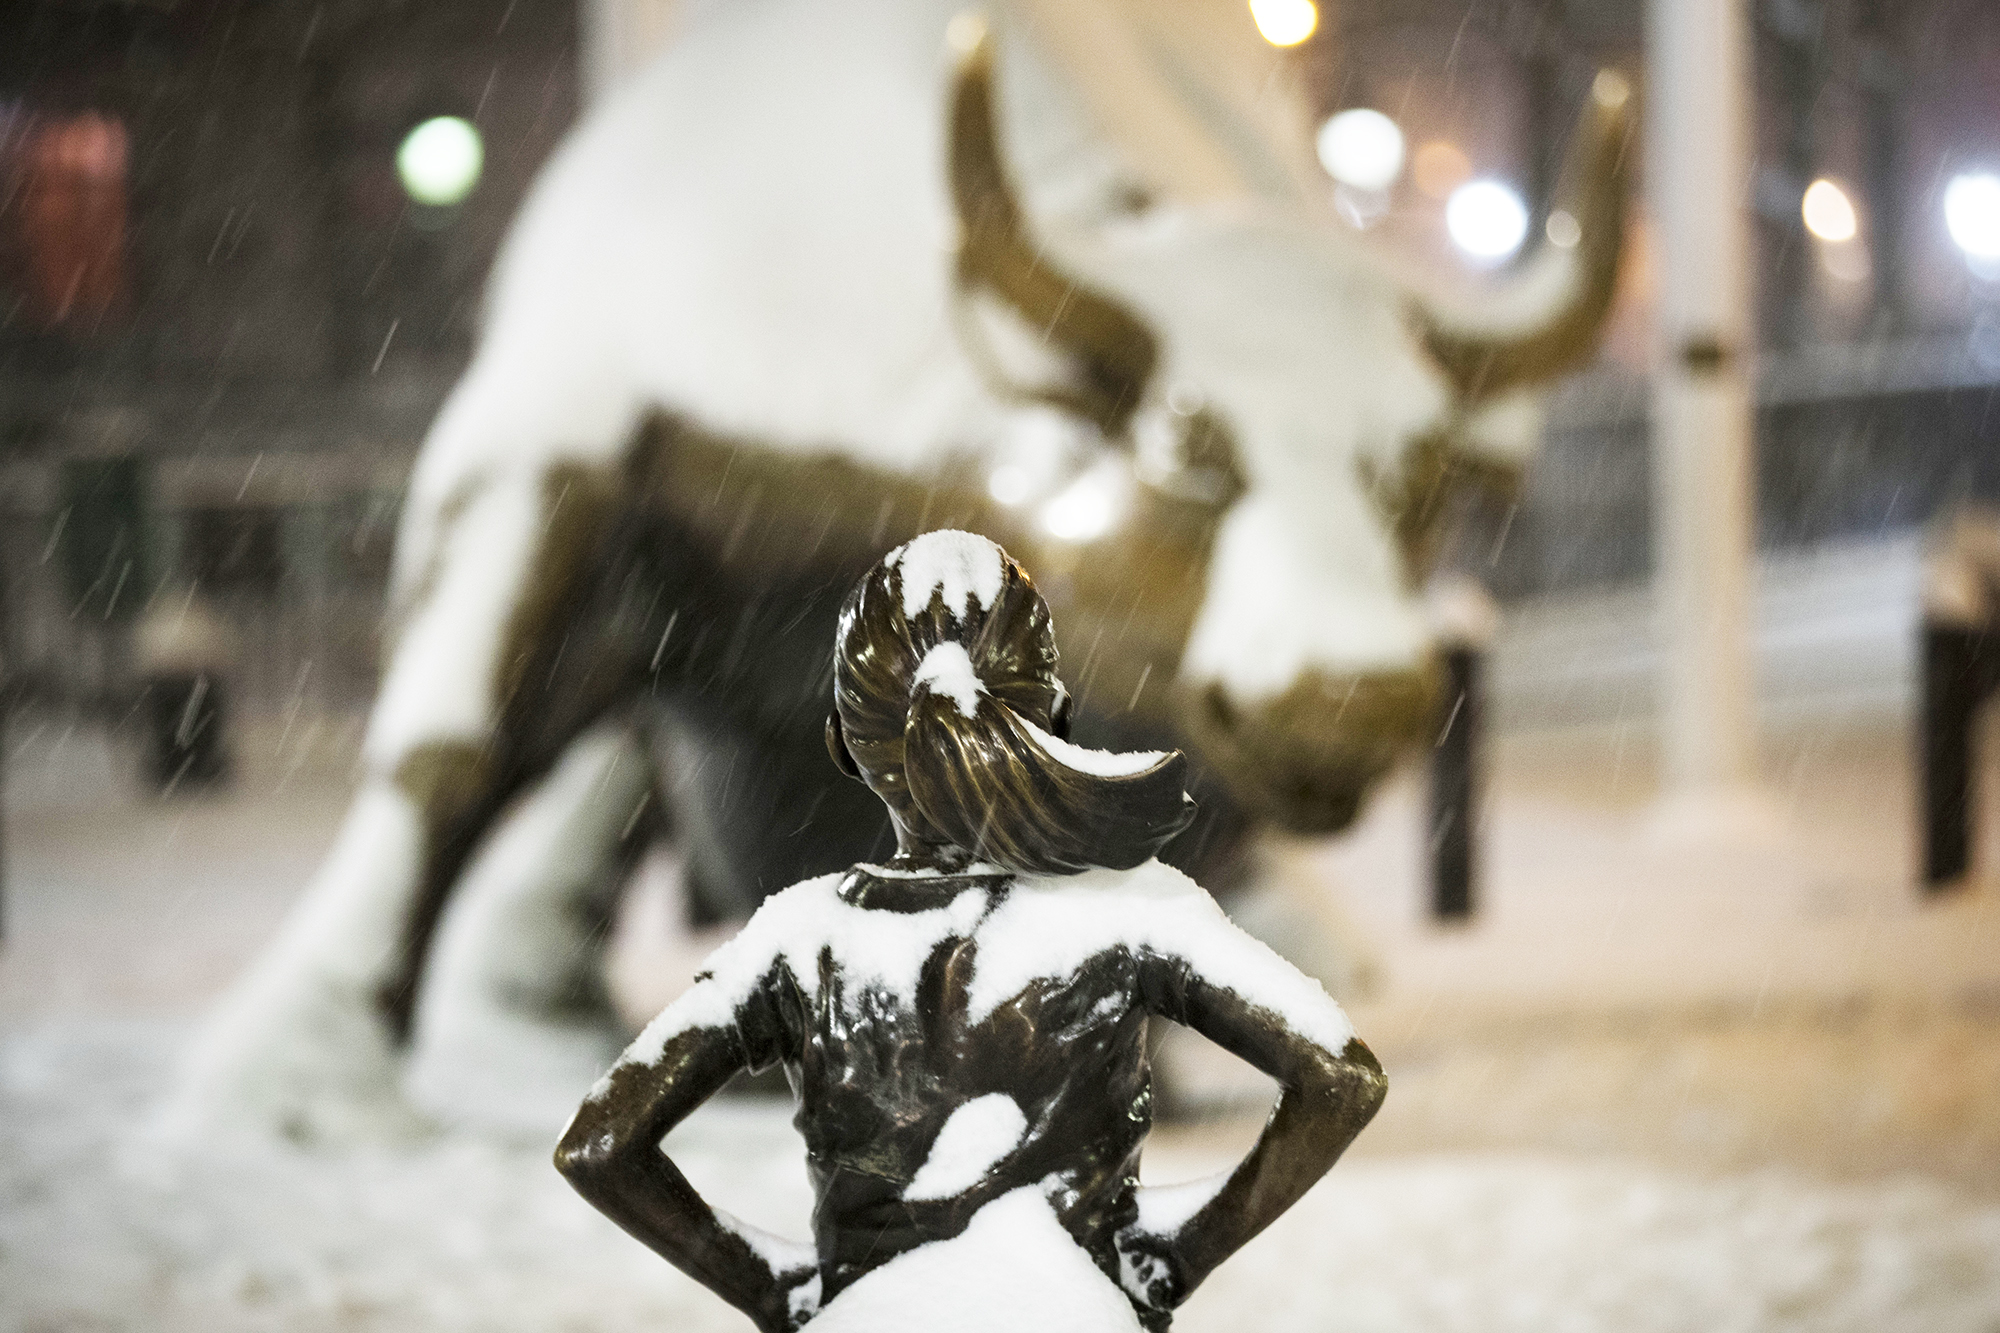 The 'Fearless Girl' statue stands in the snow in New York City's Financial District,  on March 14, 2017.